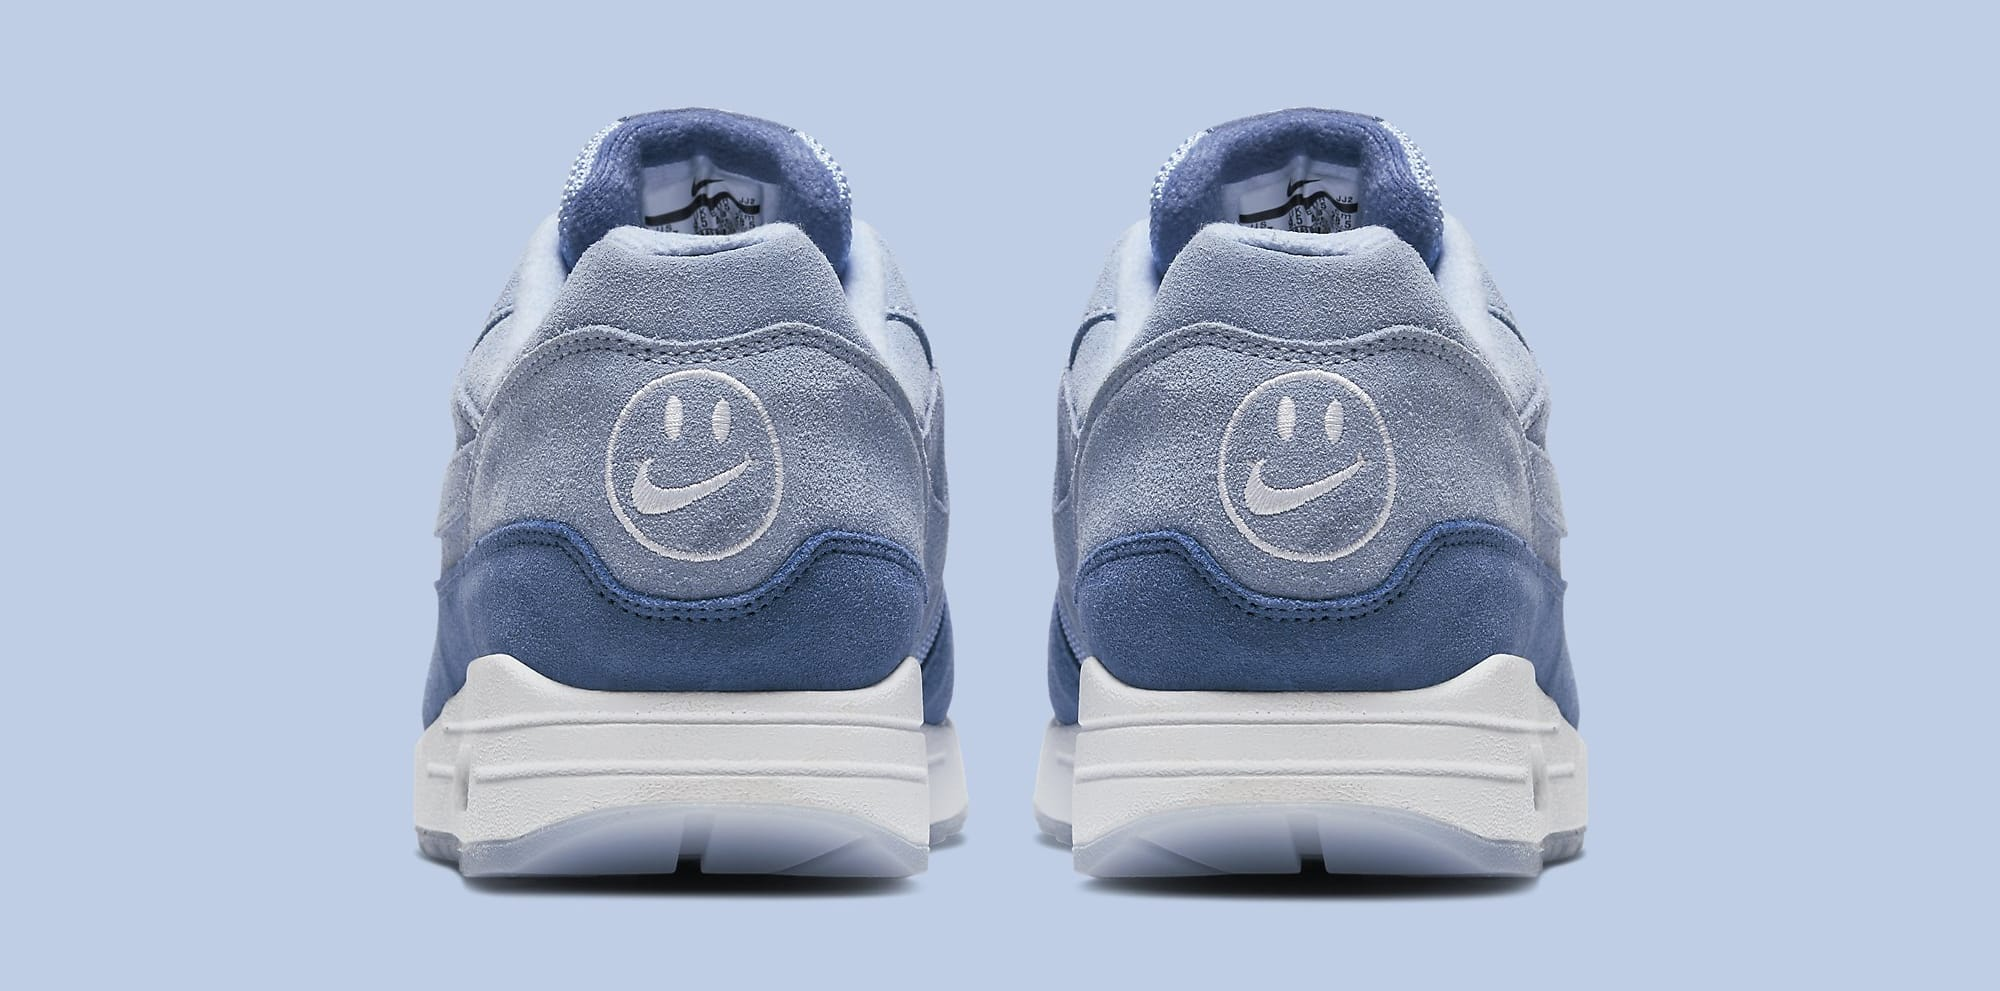 Nike Air Max 1 Have A Nike Day To Come In Light Blue